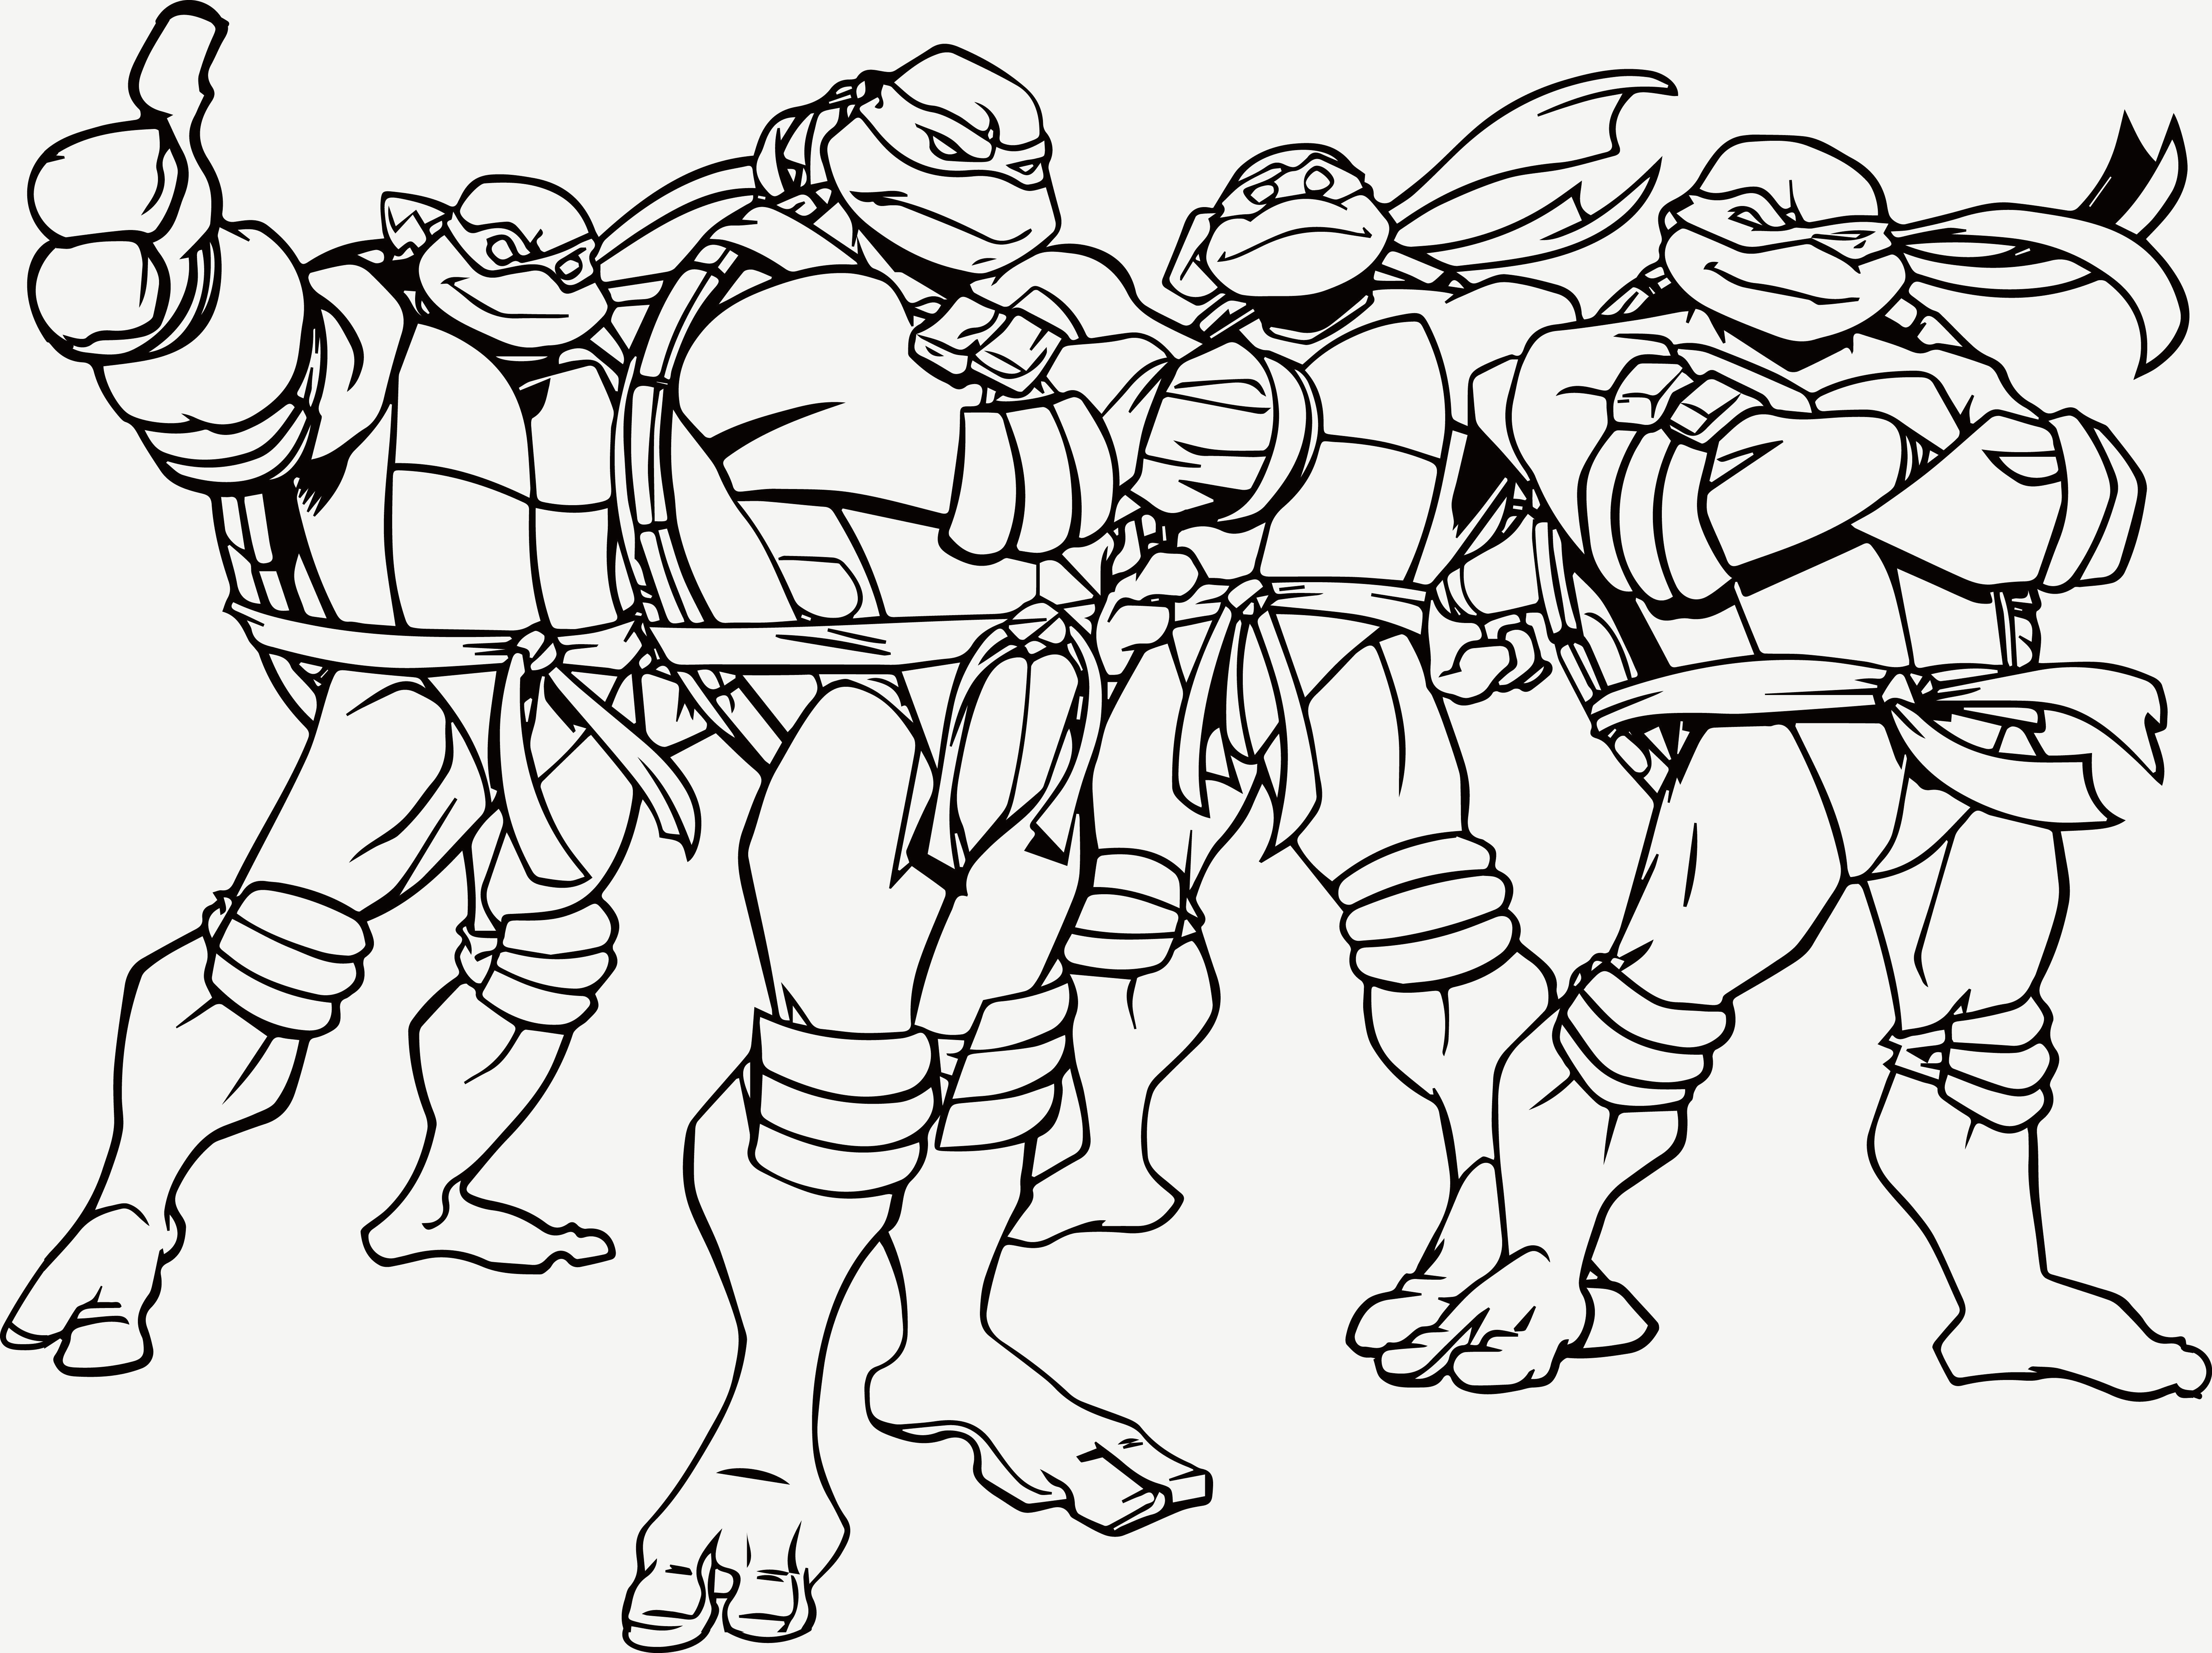 Nickelodeon Teenage Mutant Ninja Turtles Coloring Pages  Collection 13i - Free For kids